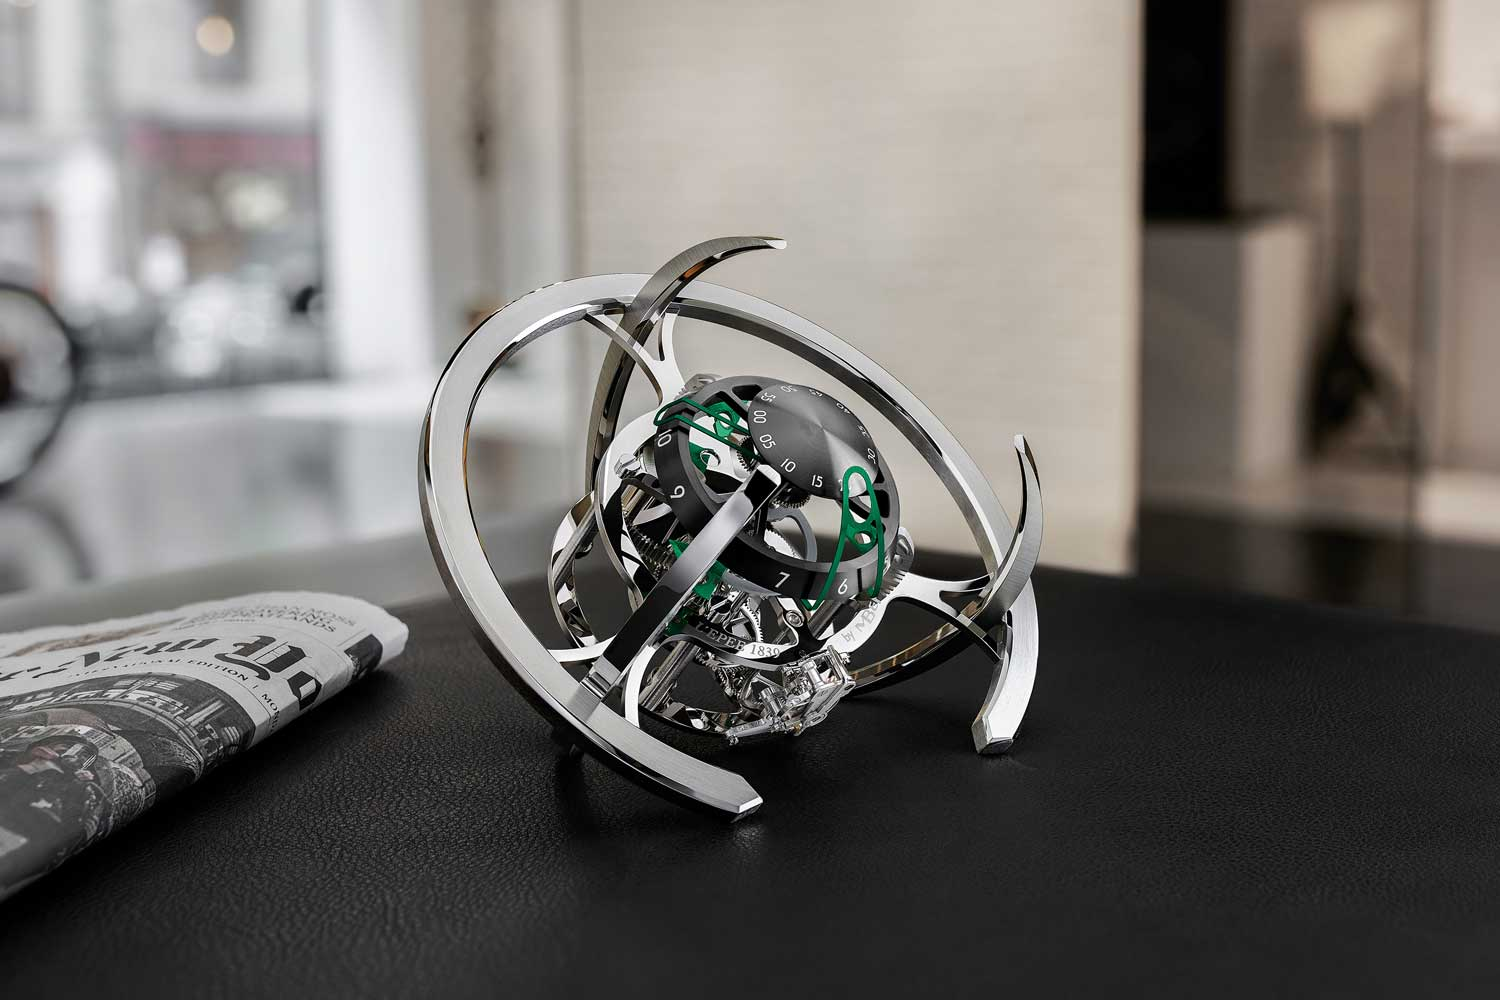 MB&F + L'Epee 1839 Starfleet Explorer with green accents